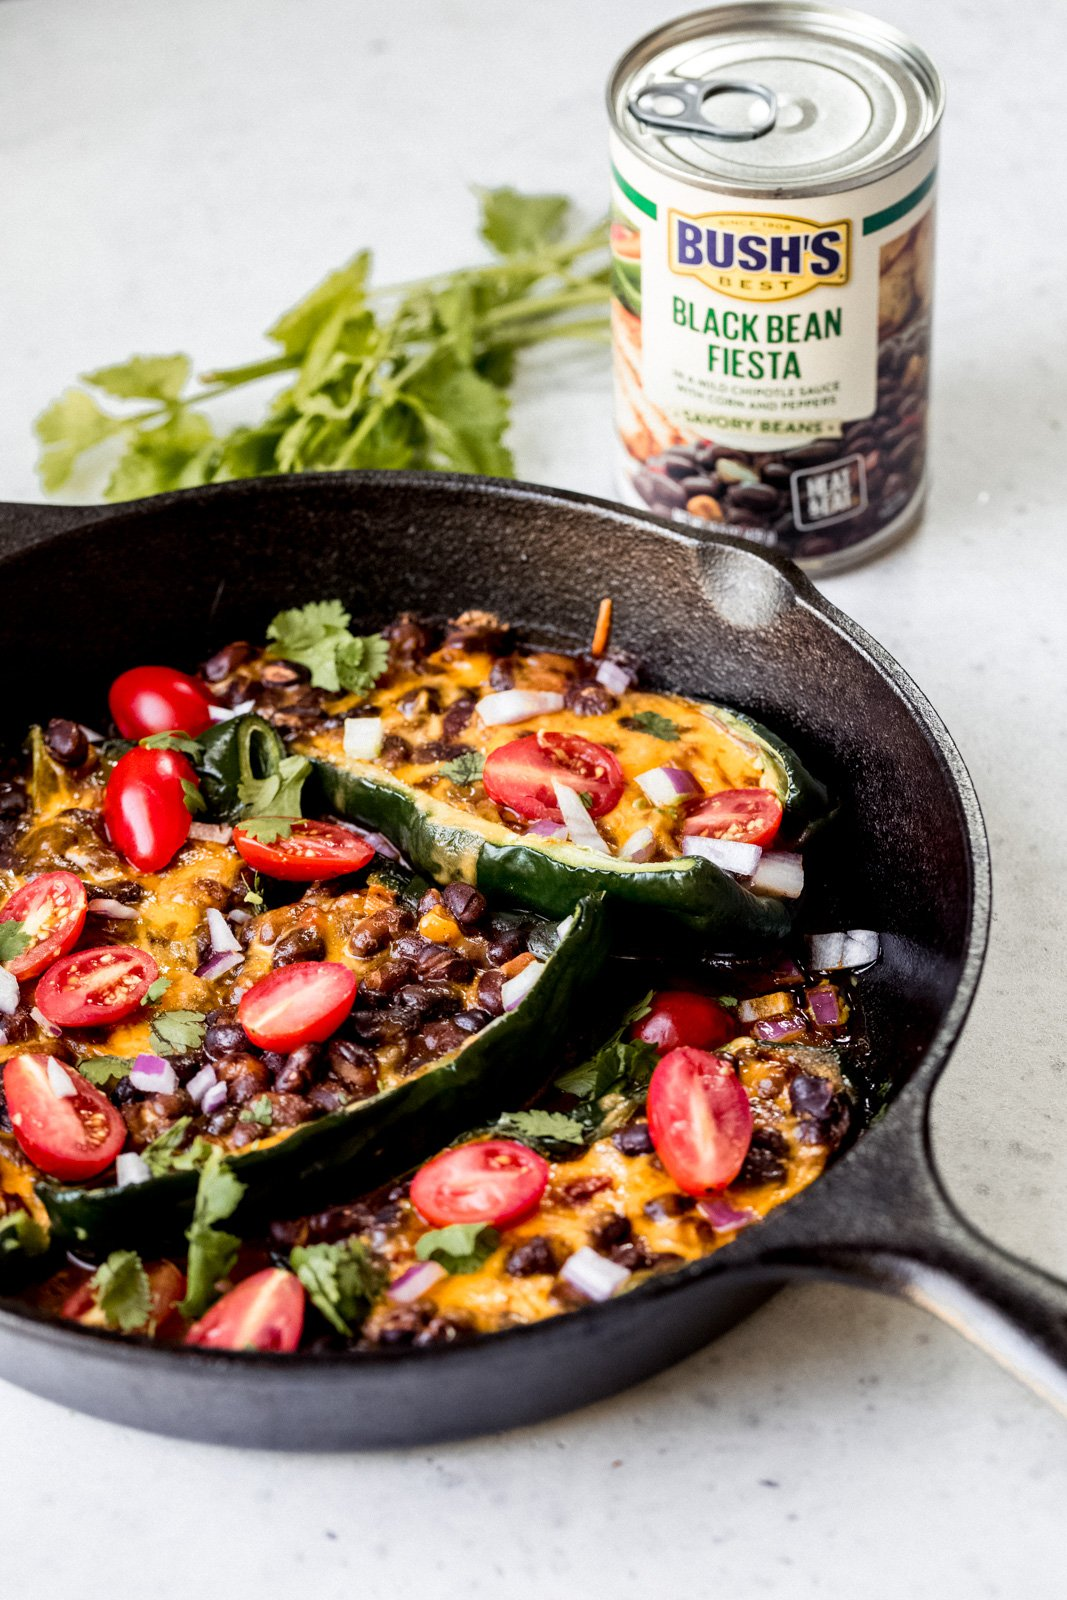 grilled stuffed poblano peppers with beans and cheese in a skillet next to a can of beans